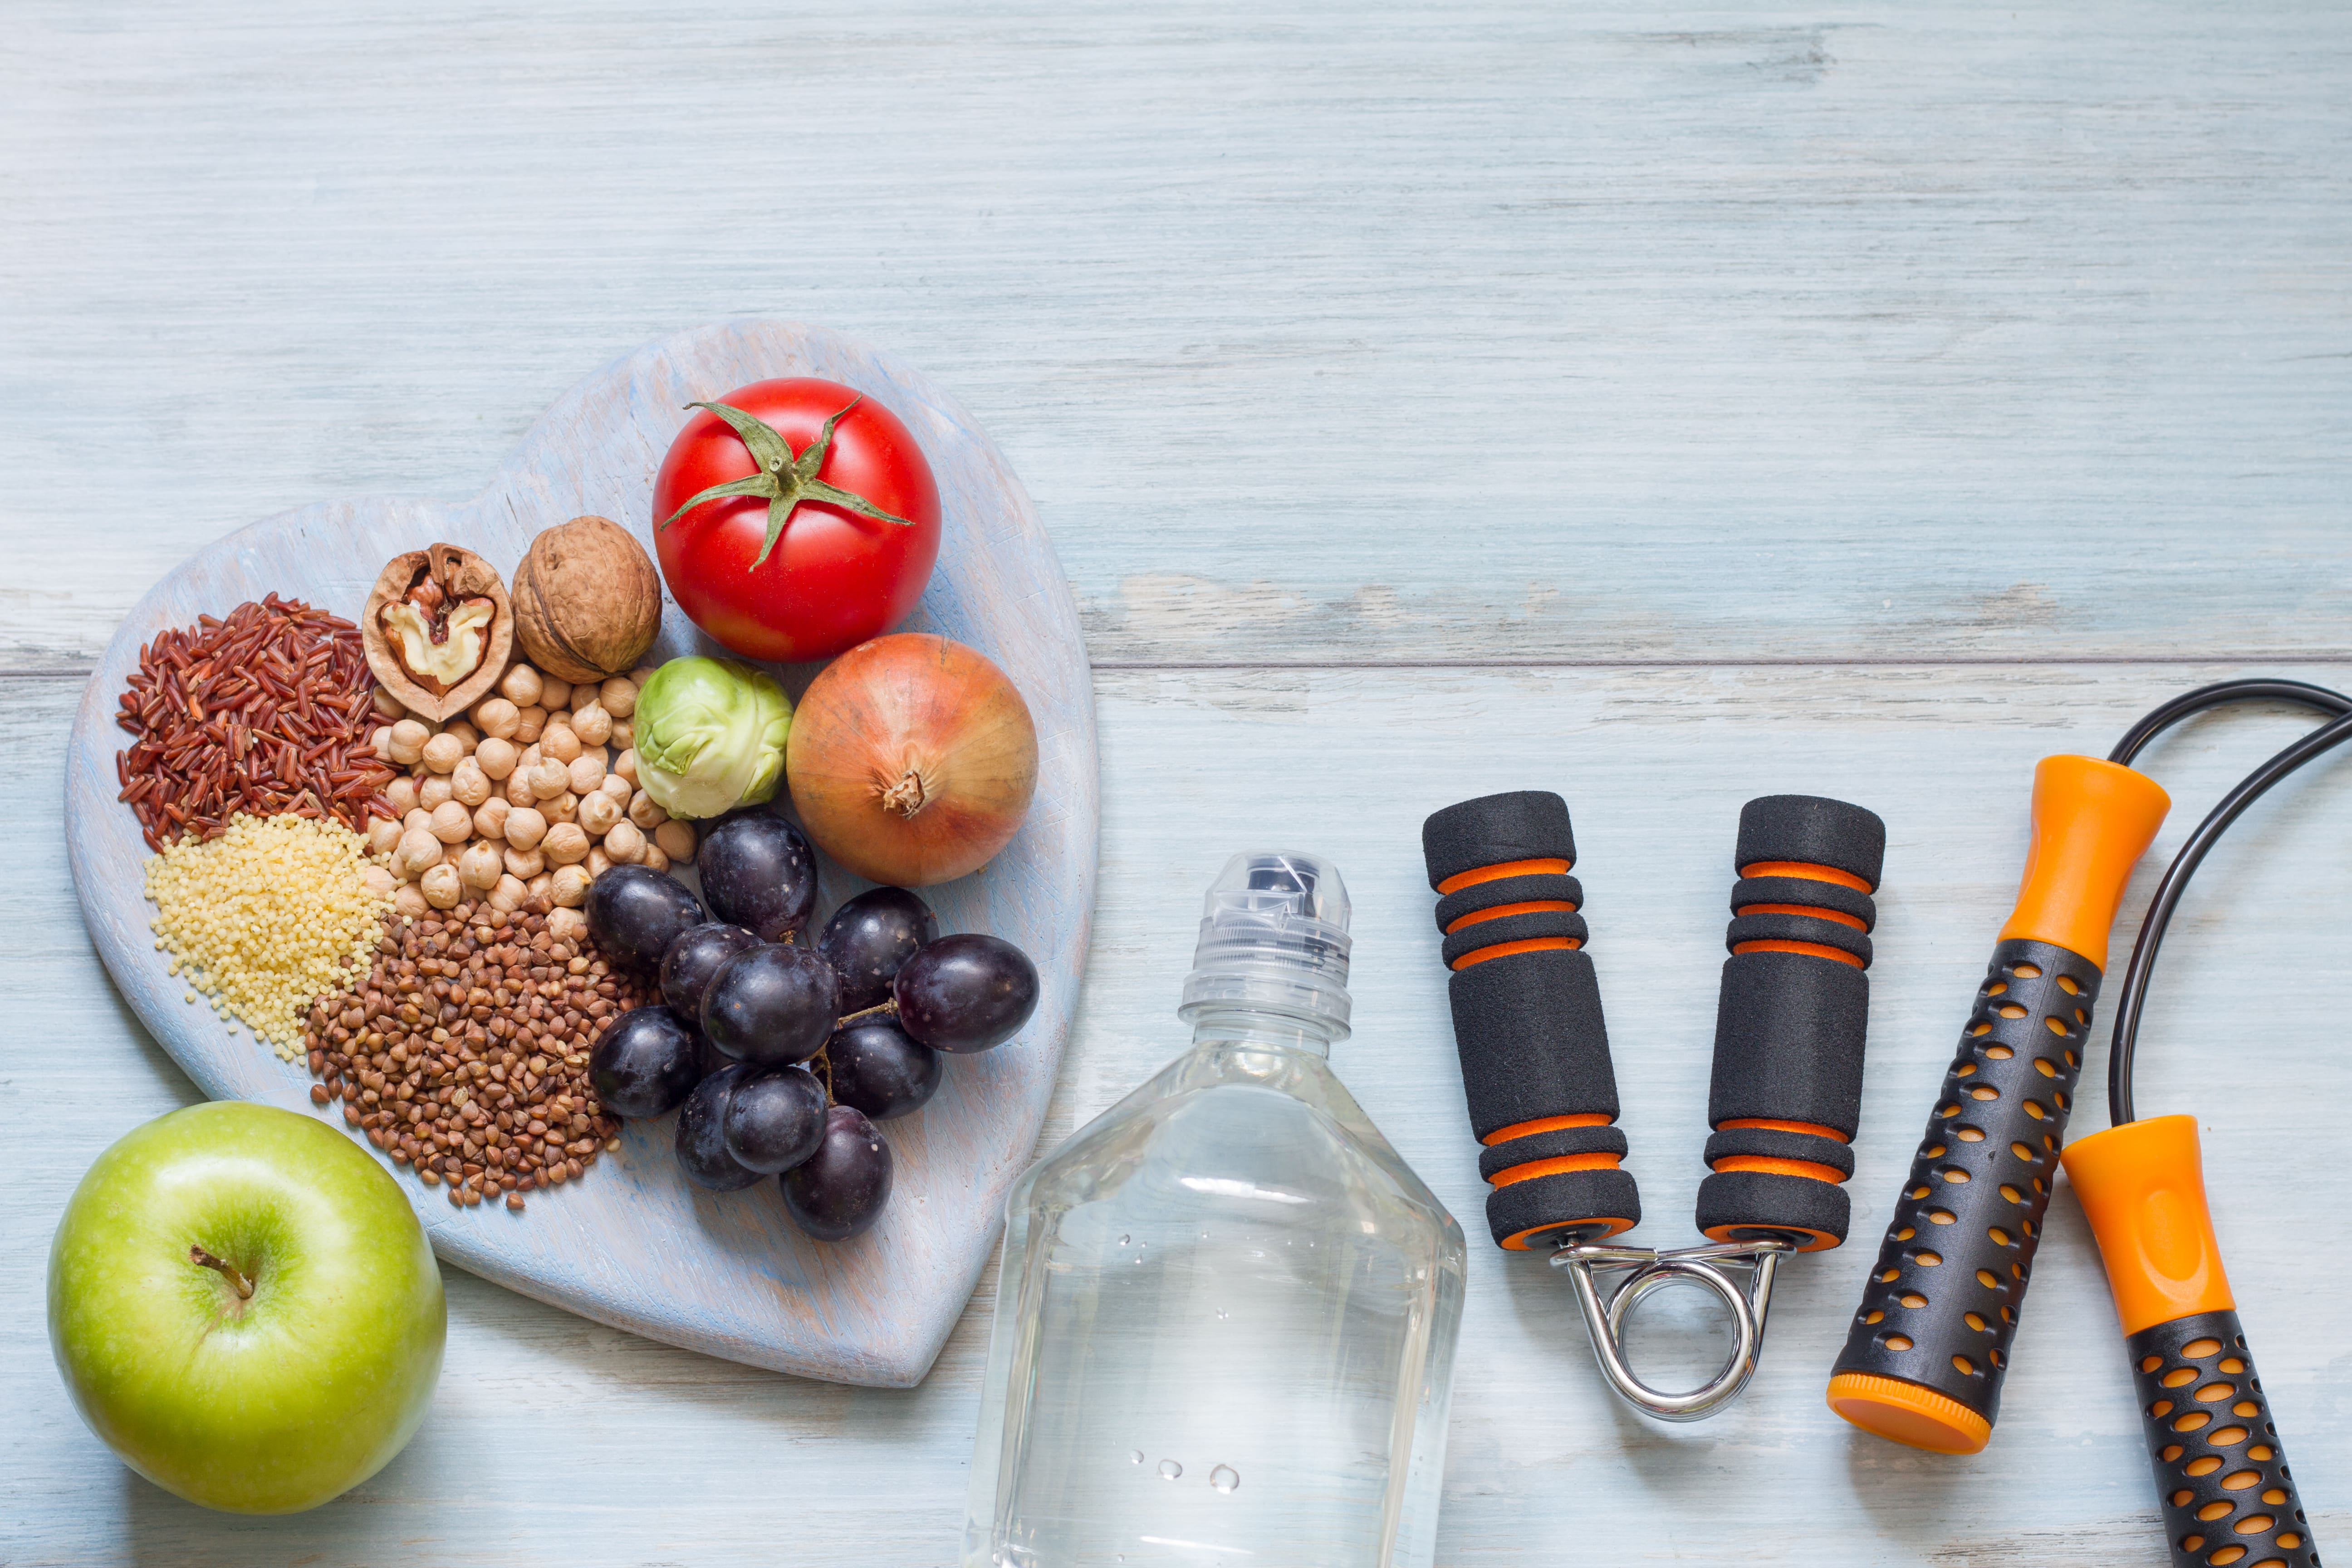 healthy fat loss tools including fruit, water, nuts, and exercise equipment